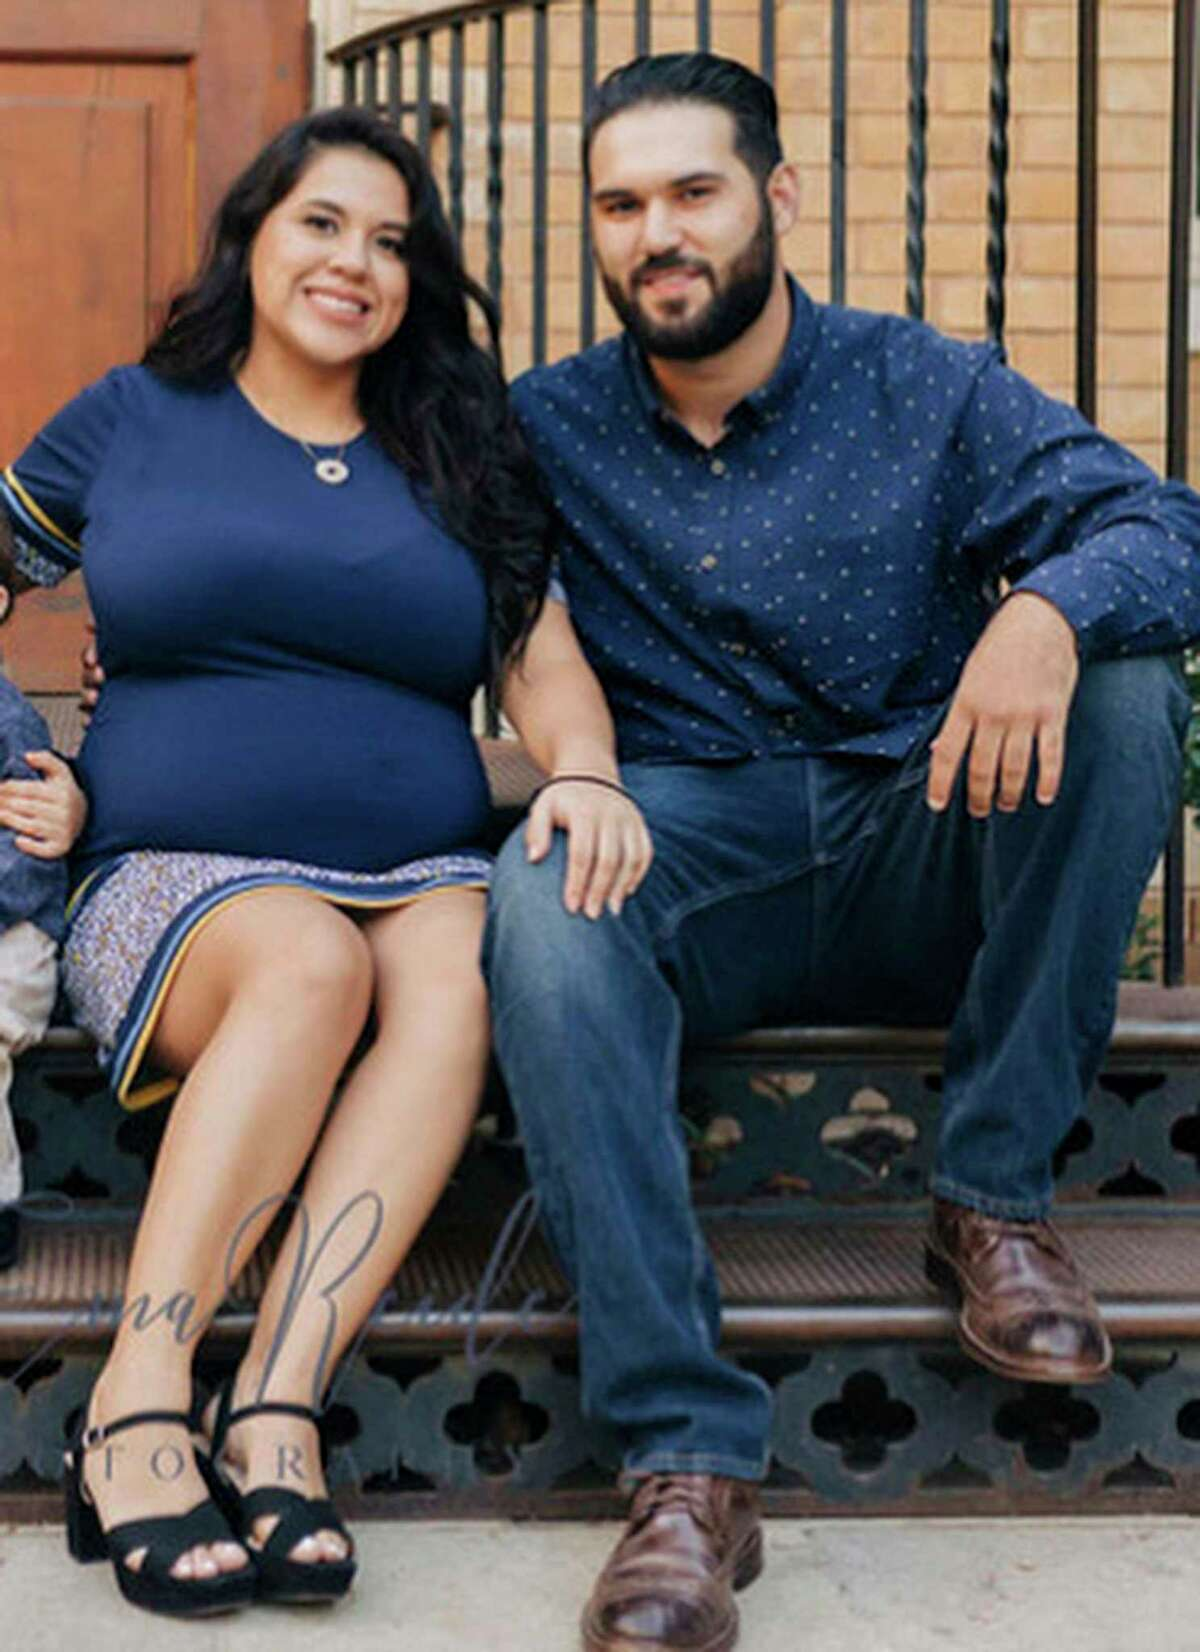 Gabriella Rodriguez, left, and Giancarlo Garza, seen in a photo provided by Garza, was expecting a daughter with Garza when she was shot and killed by her ex-boyfriend, William Bayles, on Christmas 2019.